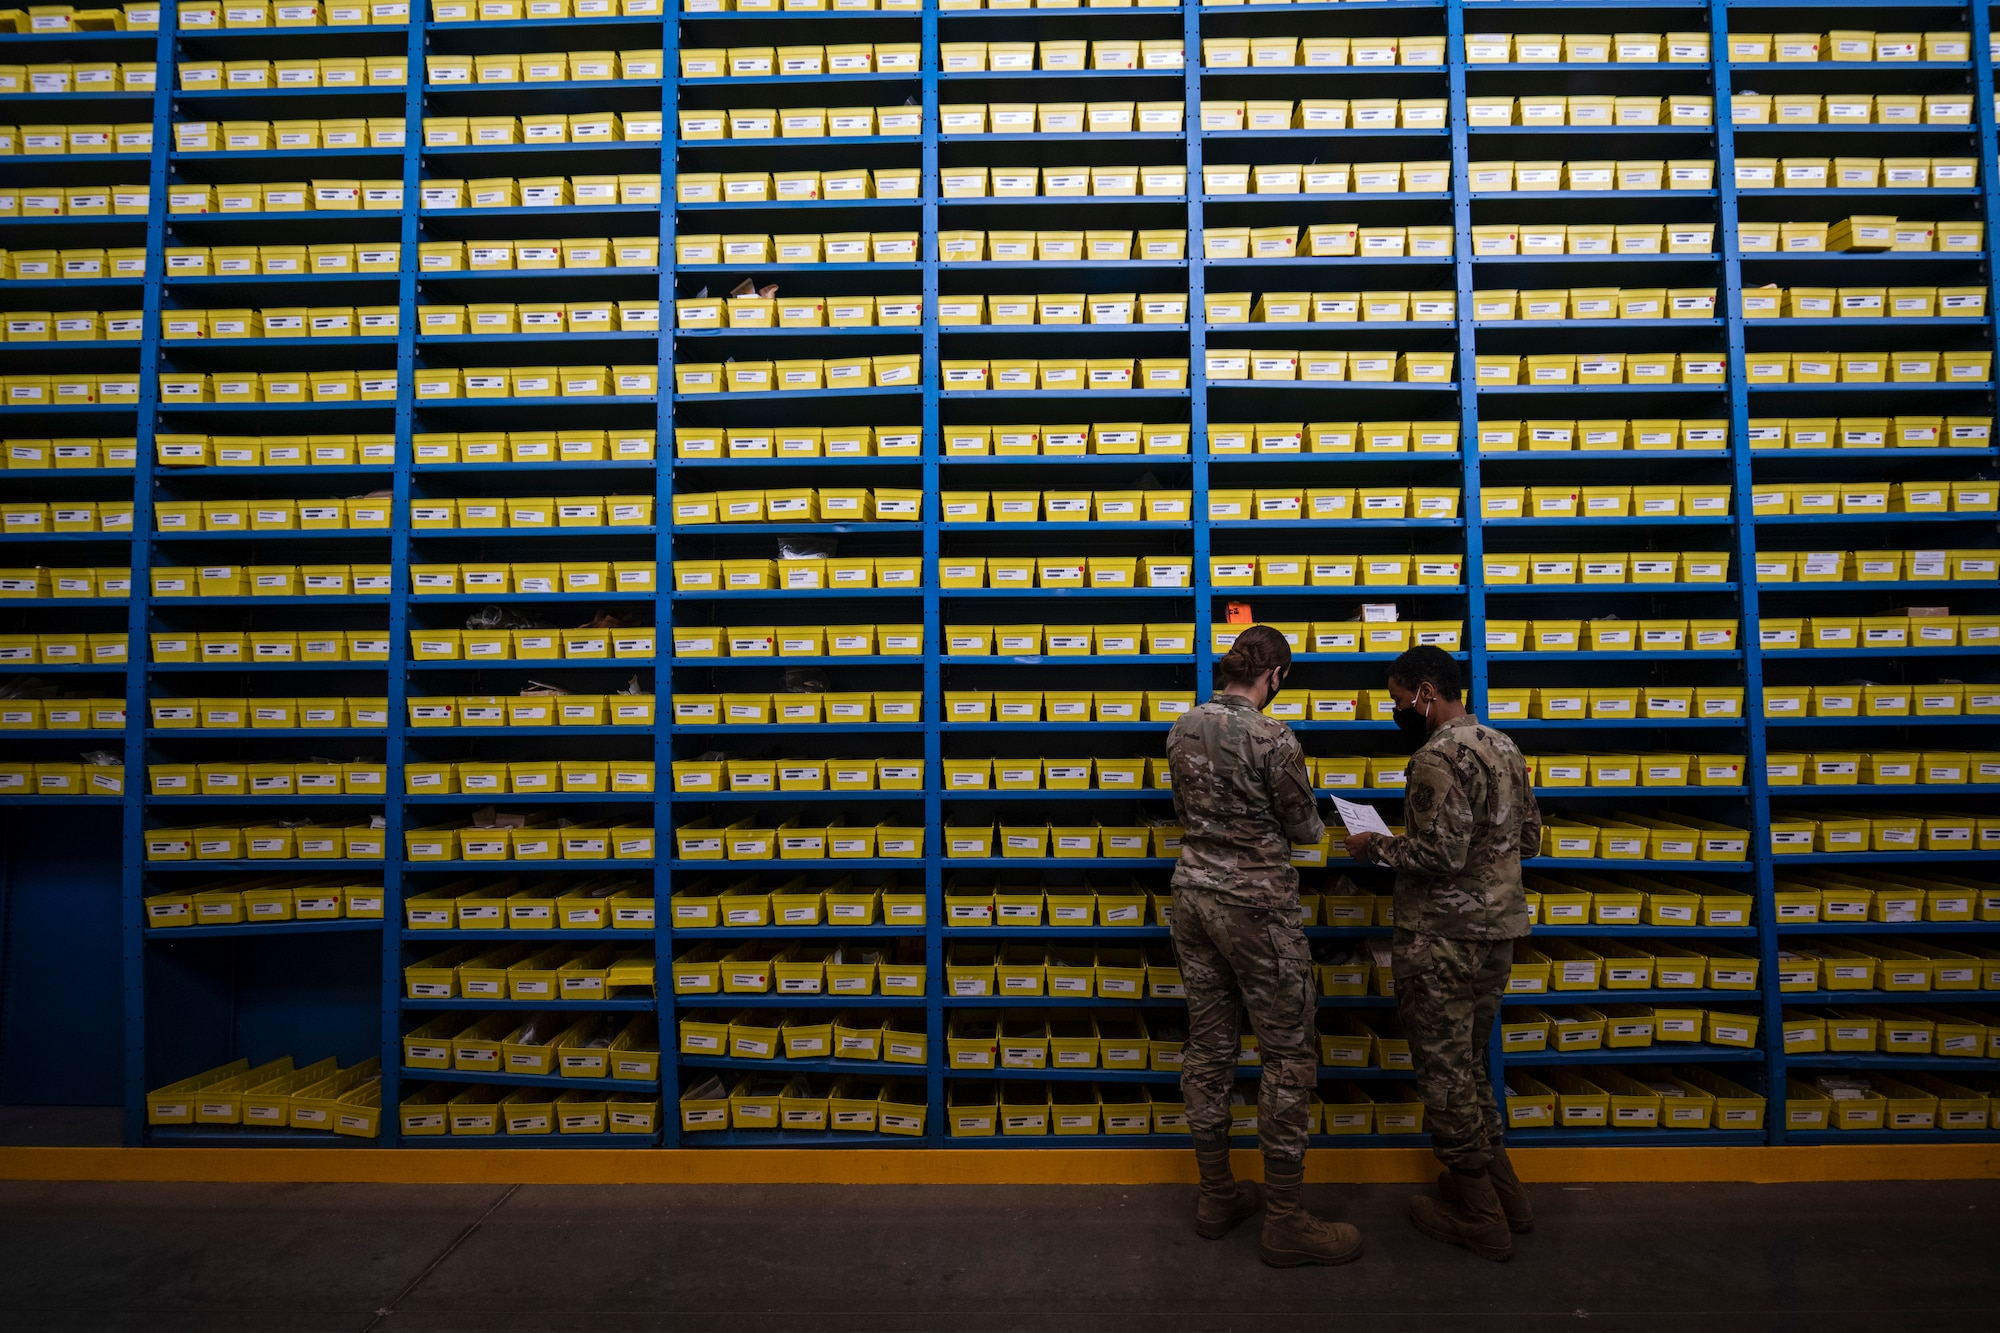 Two female Airmen stand next to each other next to a very tall wall of shelves